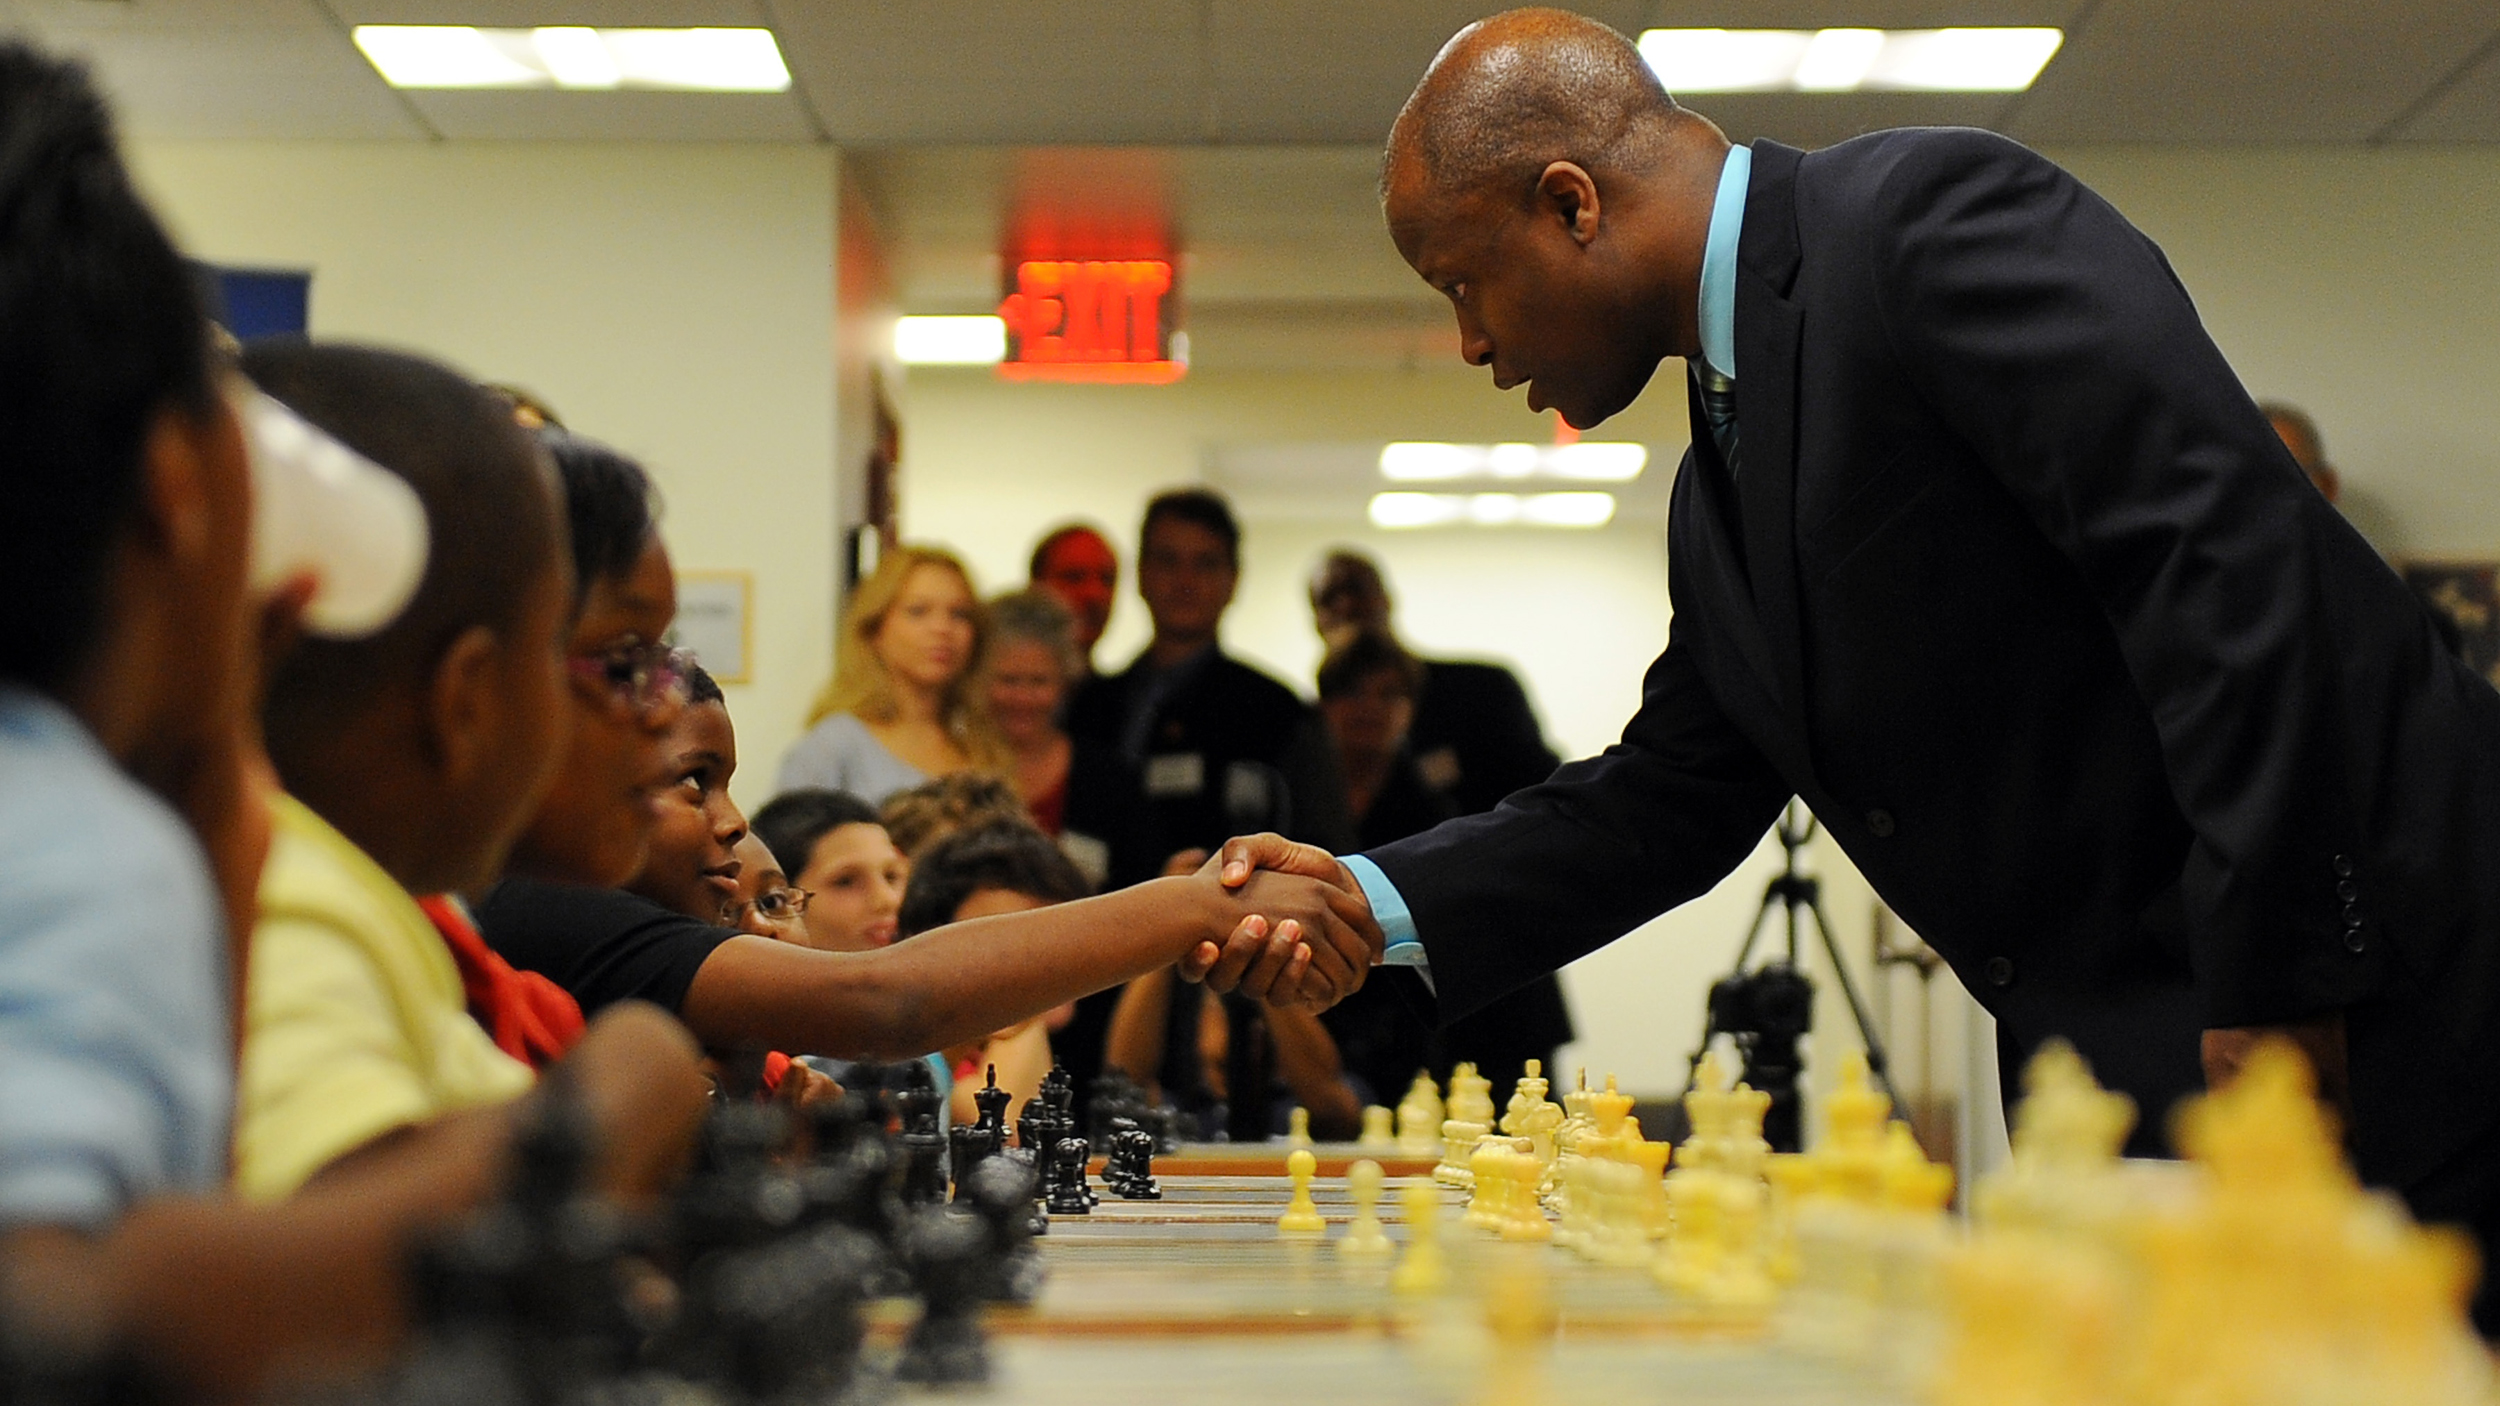 Maurice Ashley International Chess Grandmaster plays 30 school-aged children in a round of chess at the same time.